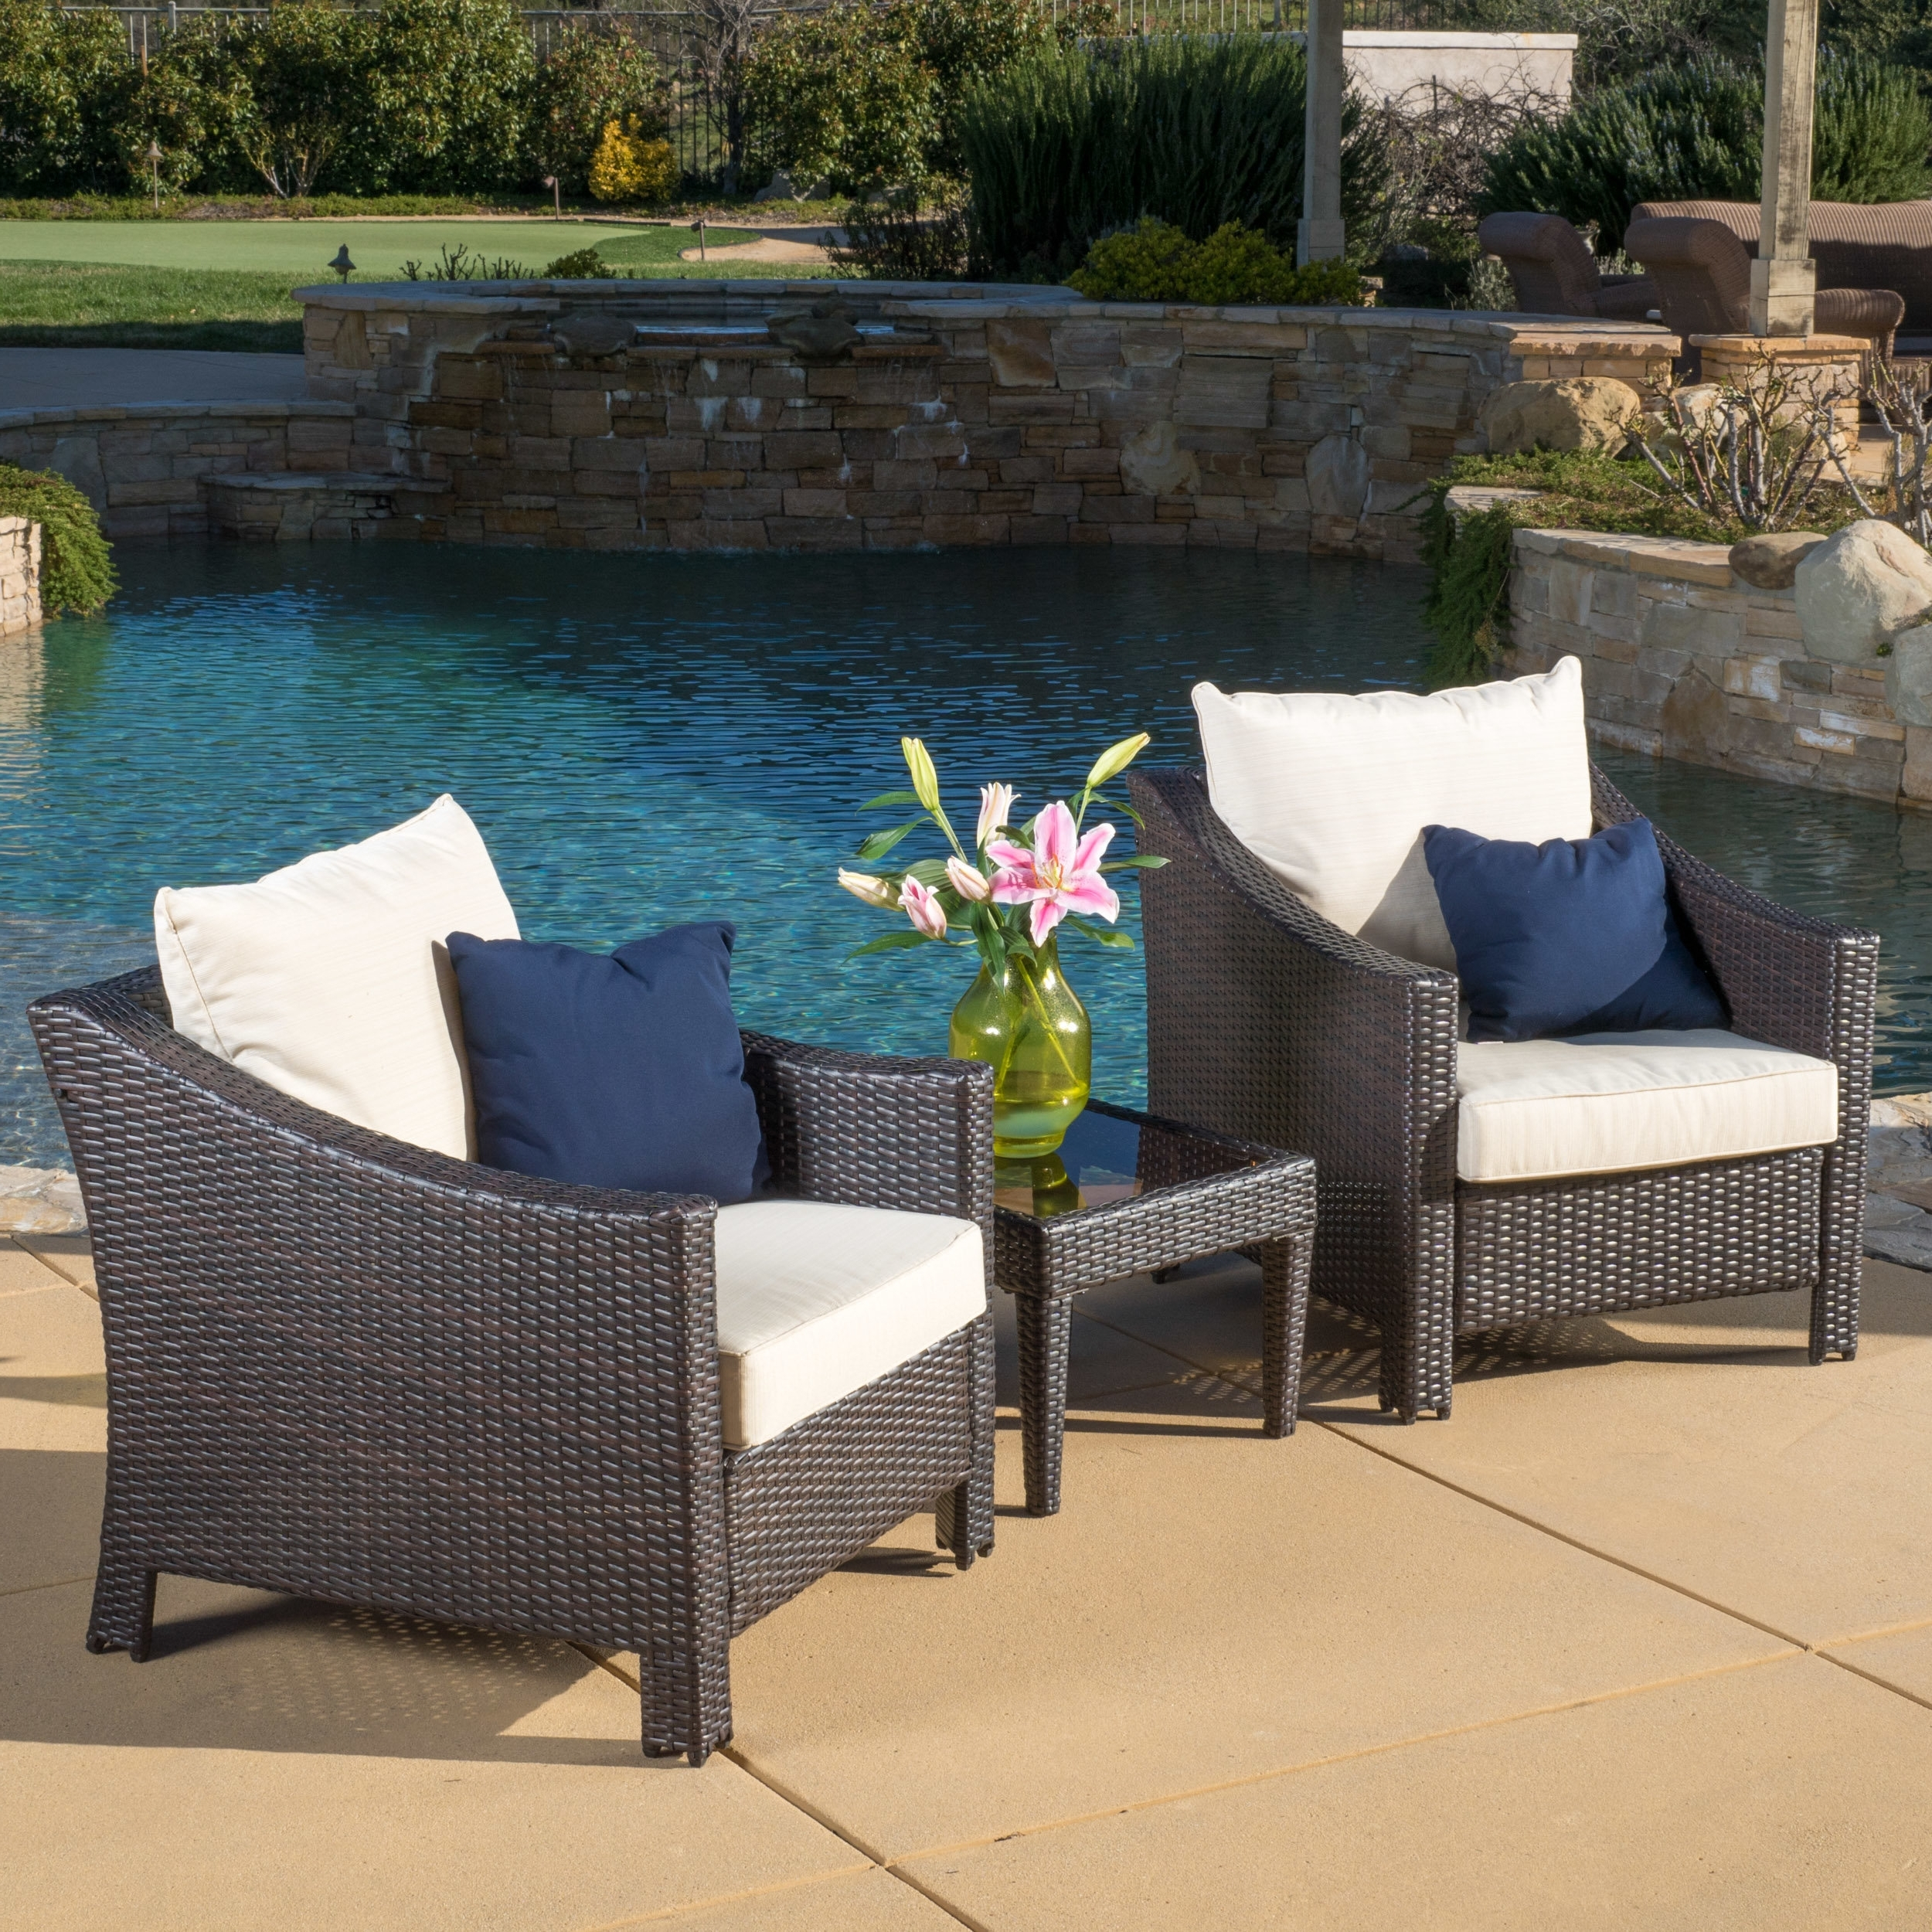 2019 Discount Sling Patio Furniture 4 Piece Wicker Chat Set In Brown Throughout Sling Patio Conversation Sets (View 2 of 20)